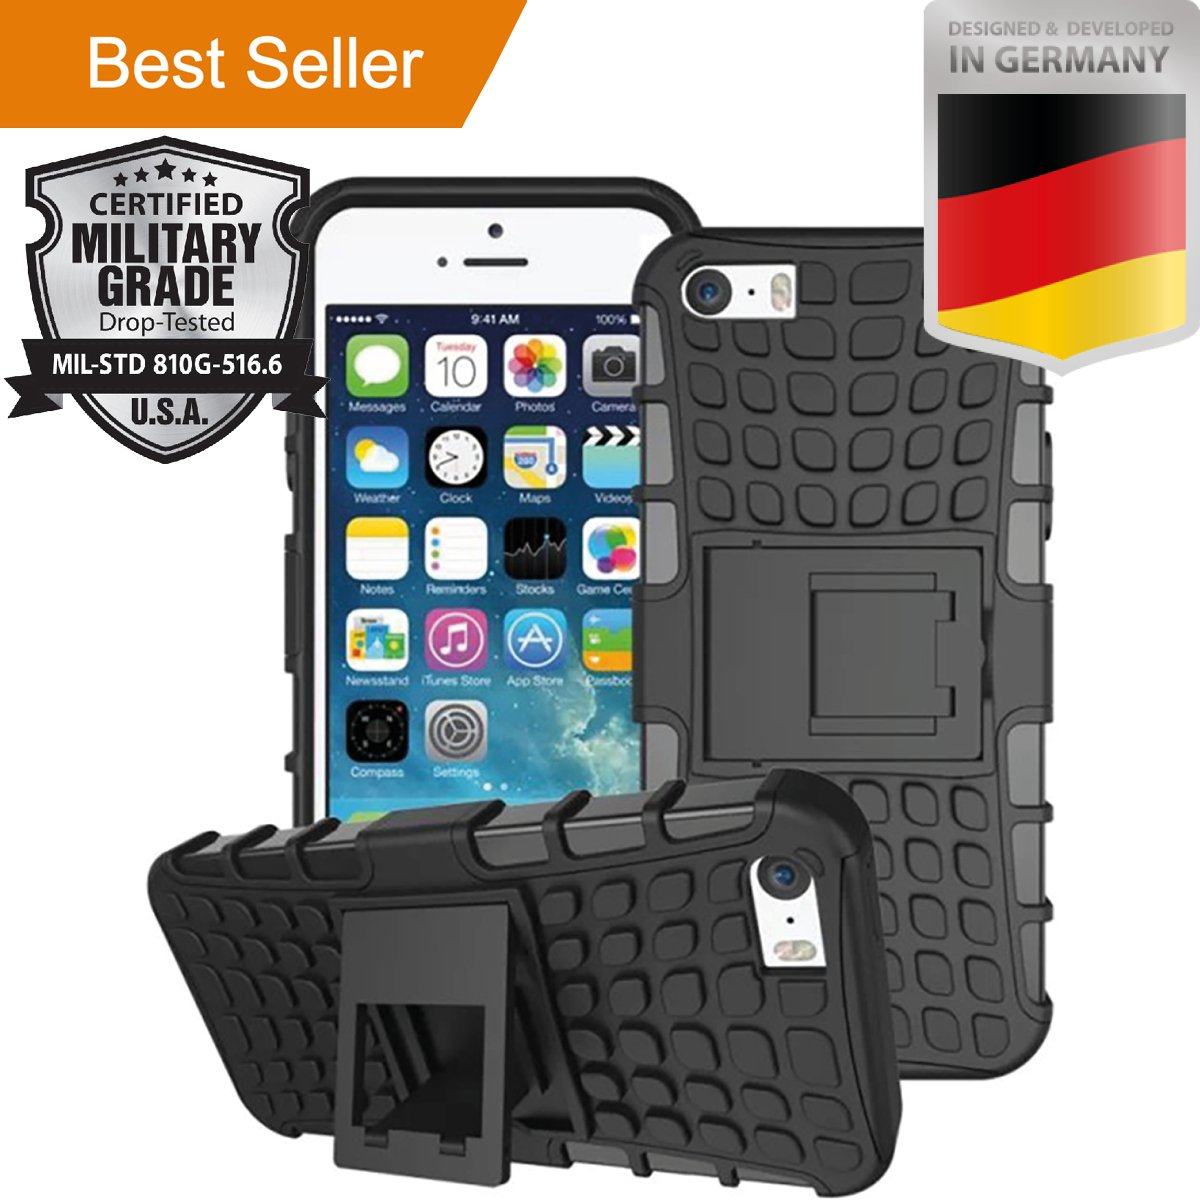 SALE! Iphone 5 & 5S LIMITED STOCK,PREMIUM Heavy Duty Hybrid Dual Layer Case Black Kickstand Shock Absorbent Armor Shock Absorbent Dirt/Dust/Snow Protection Rubber Plastic Skin Cover by MyNovation